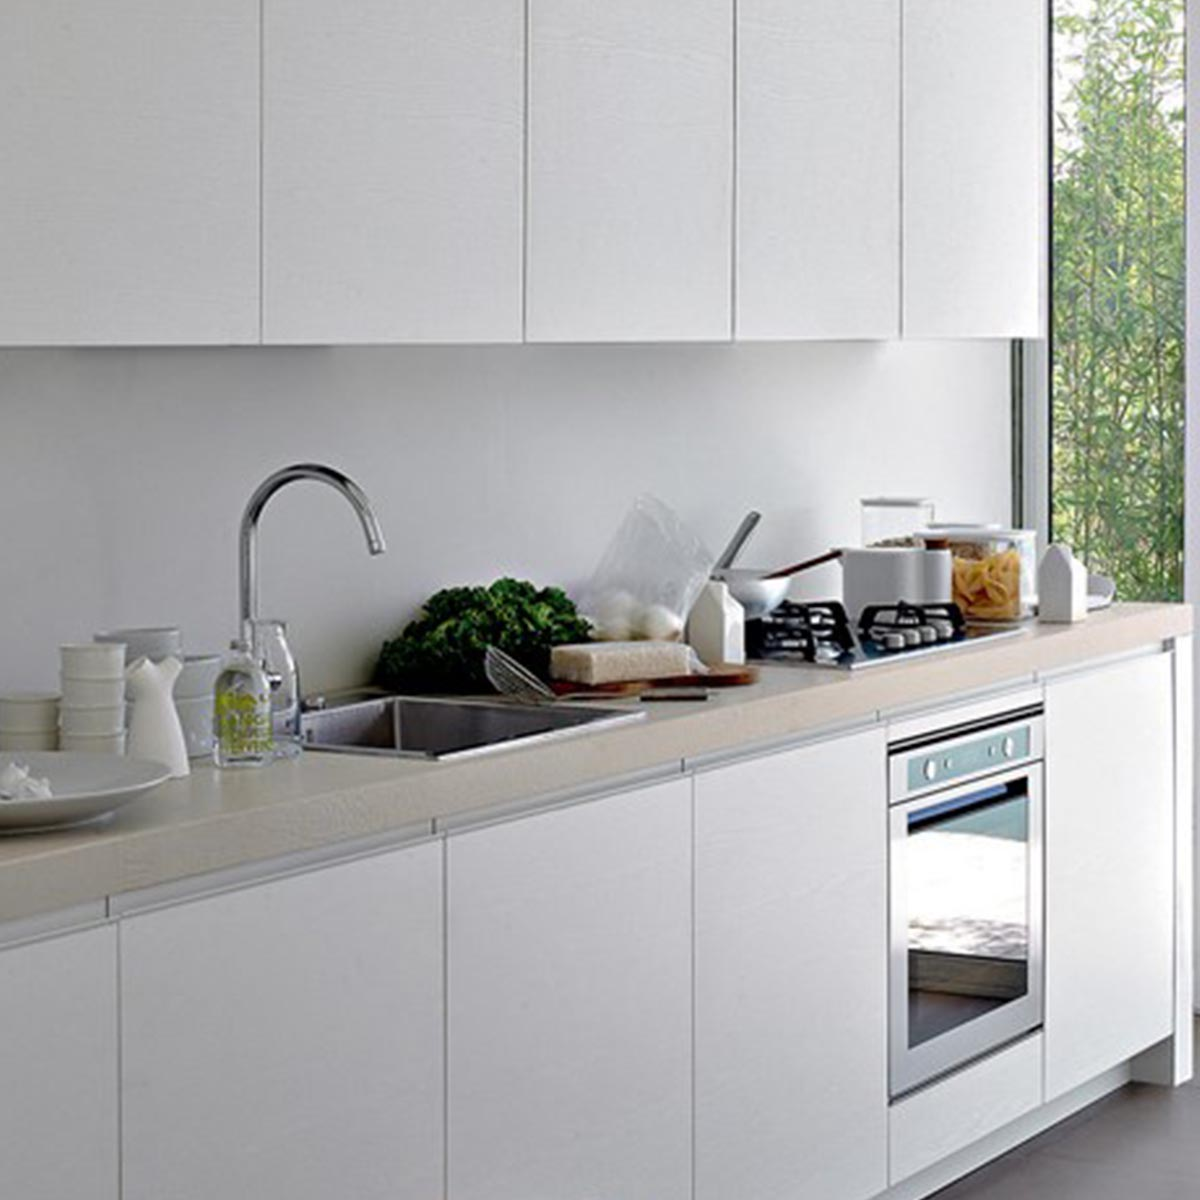 lore_mobili_bagno_0005_cucine-fly-04-fly-04_Nit_14056